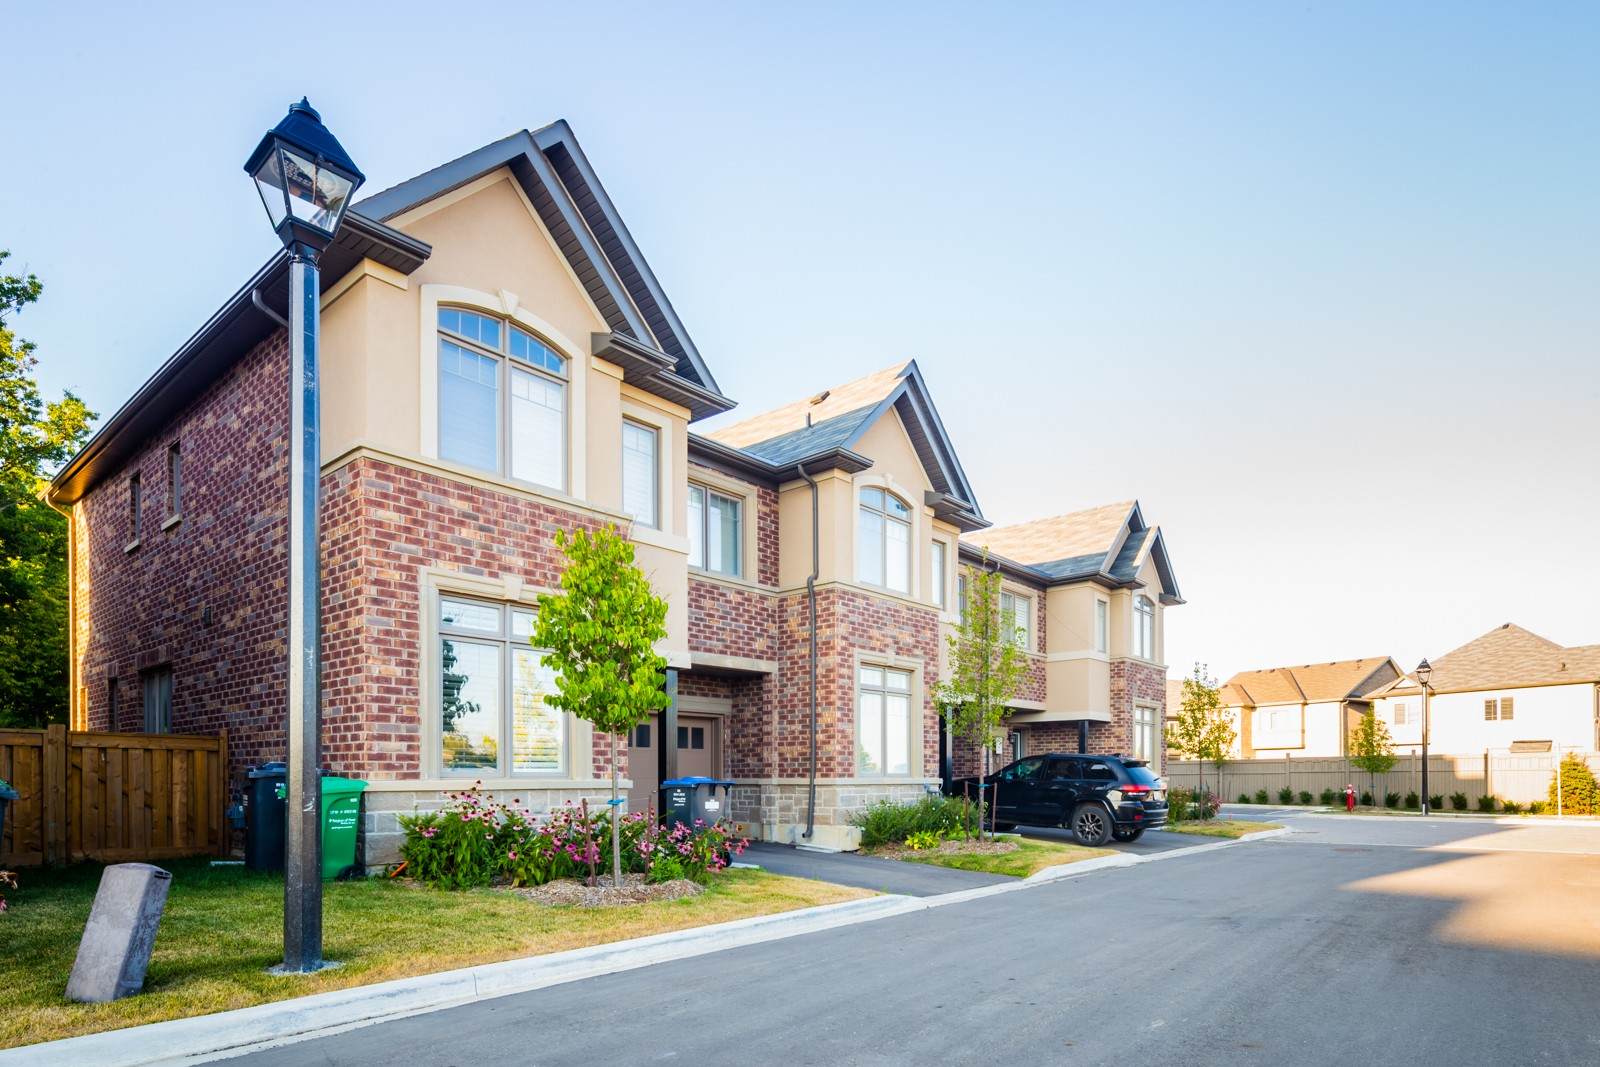 Baronwood Court Townhouses at 30 Baronwood Crt, Brampton 0